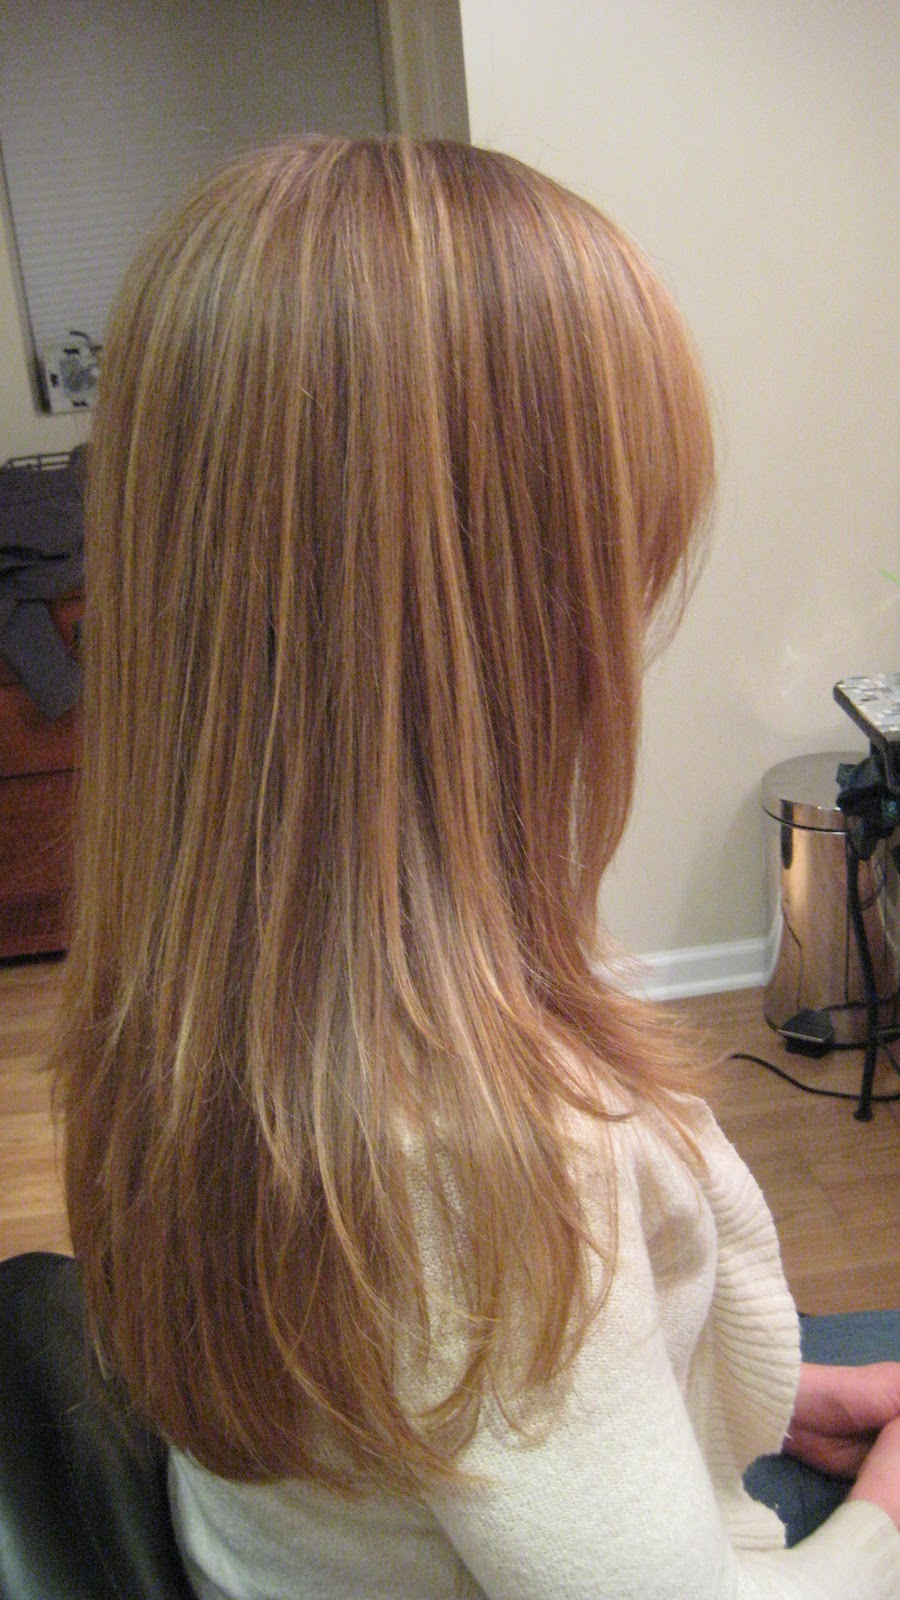 Hairstylist How-to: Red Hair With Blonde Highlights